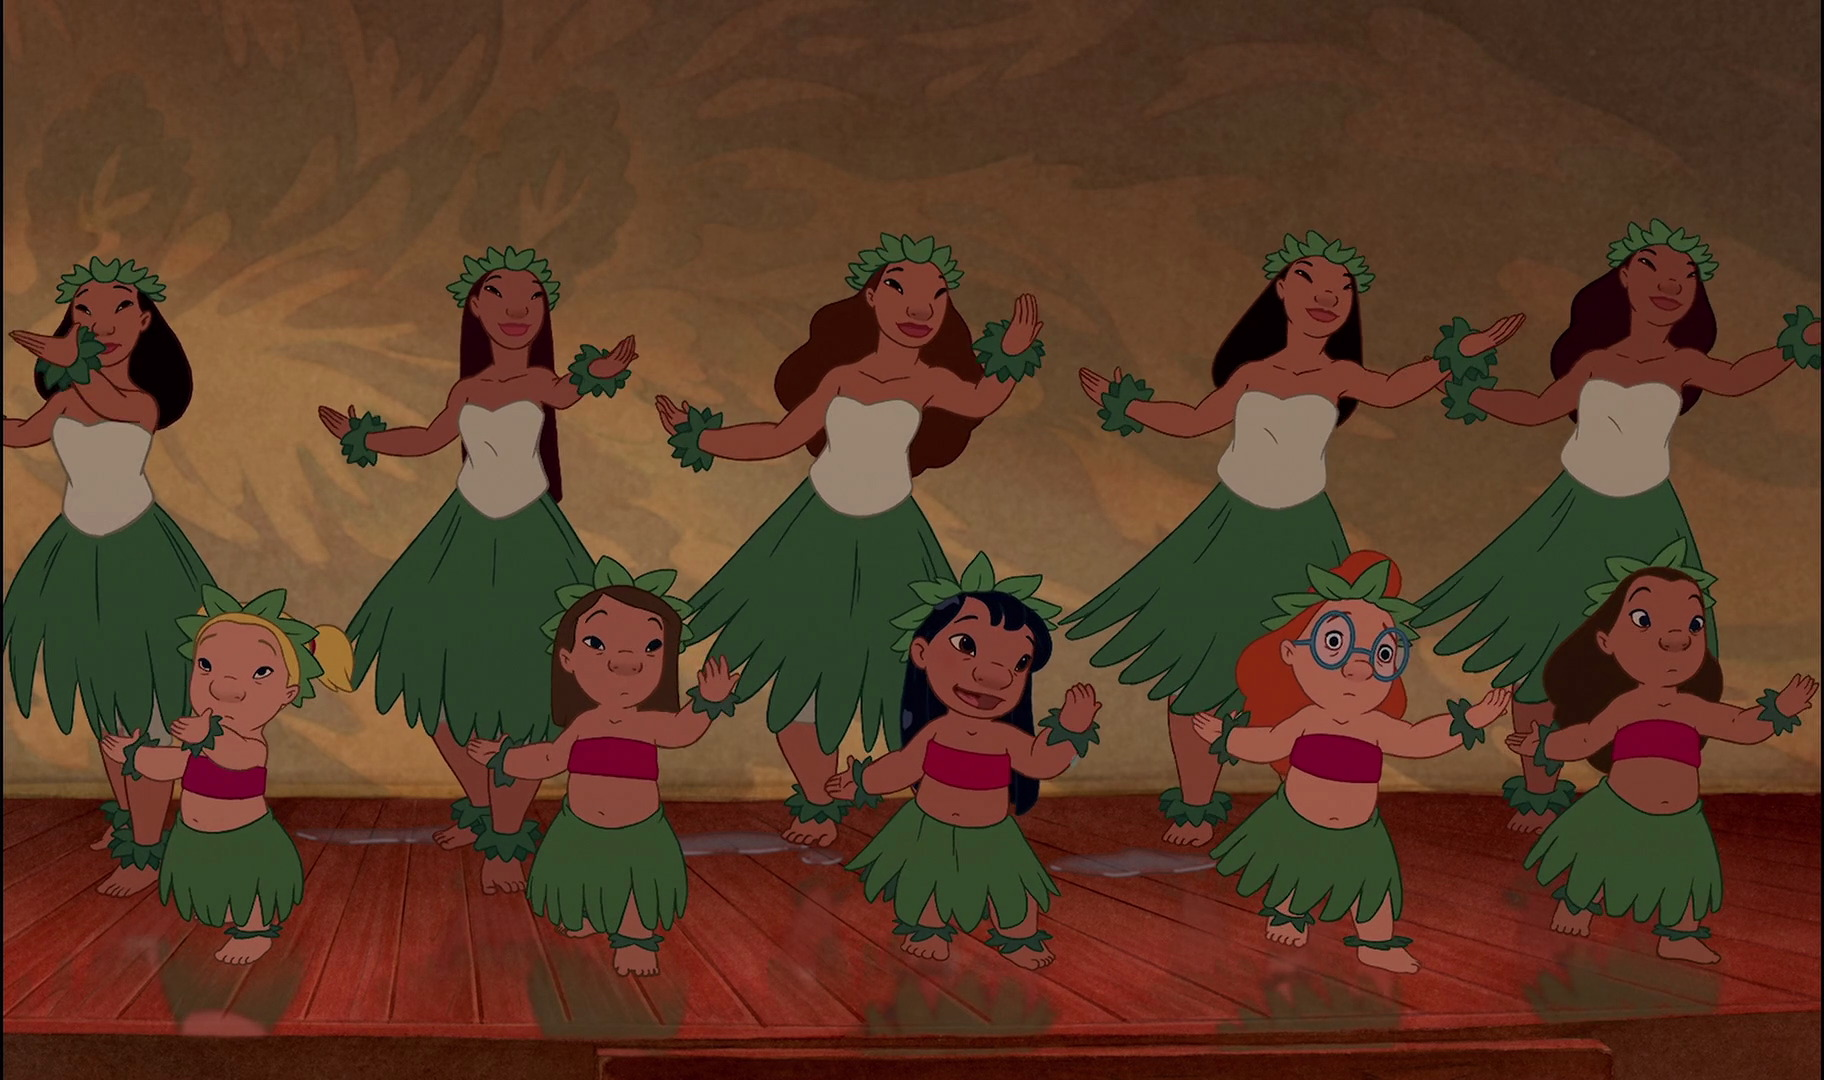 He Mele No Lilo & He Mele No Lilo | Disney Wiki | FANDOM powered by Wikia